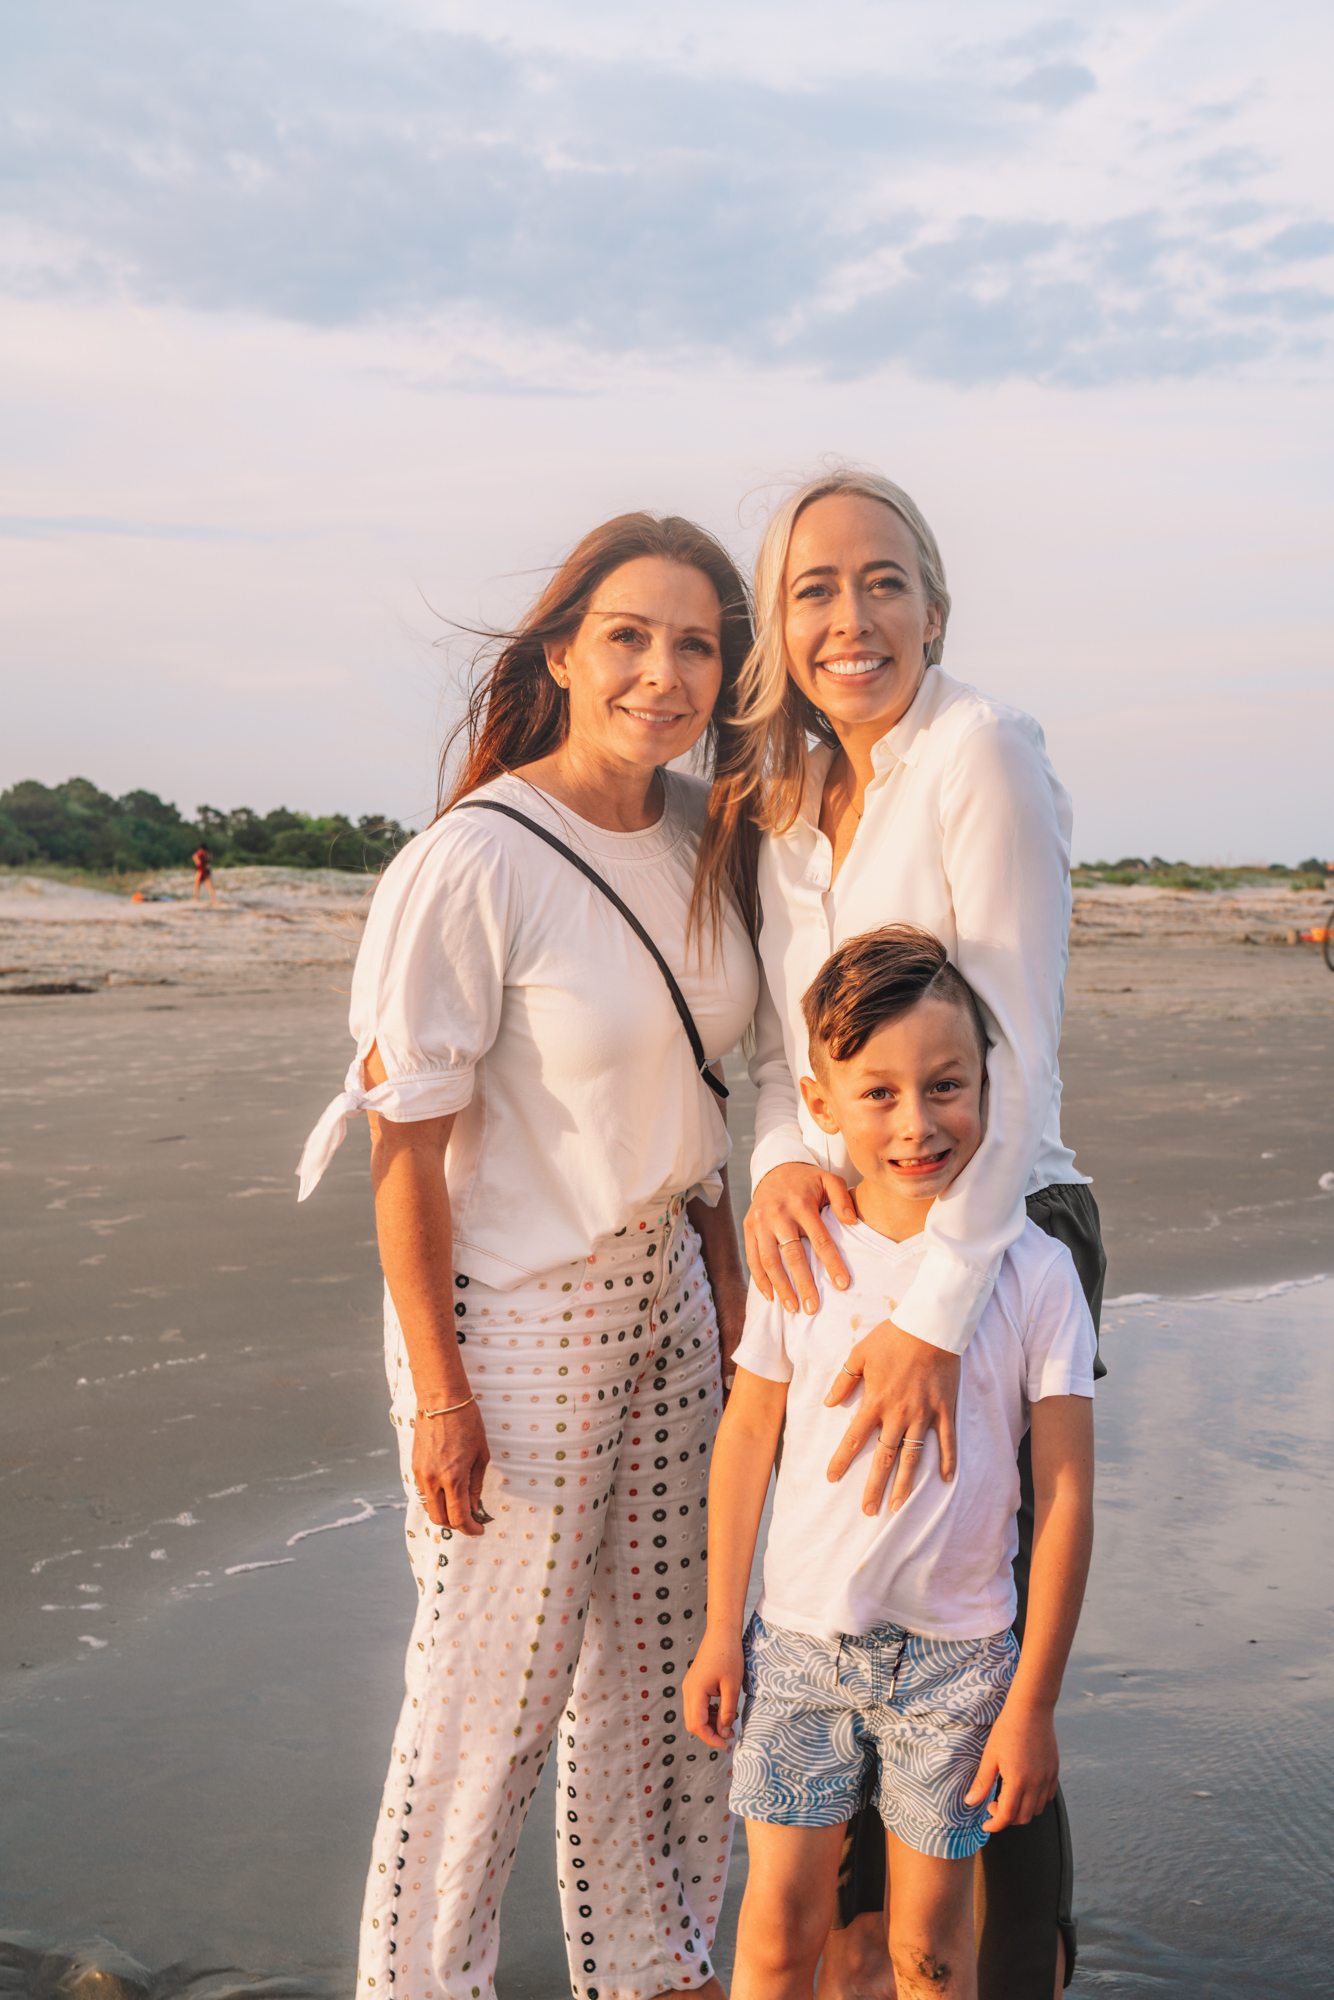 a small family smiles on the shore of the beach during sunset.